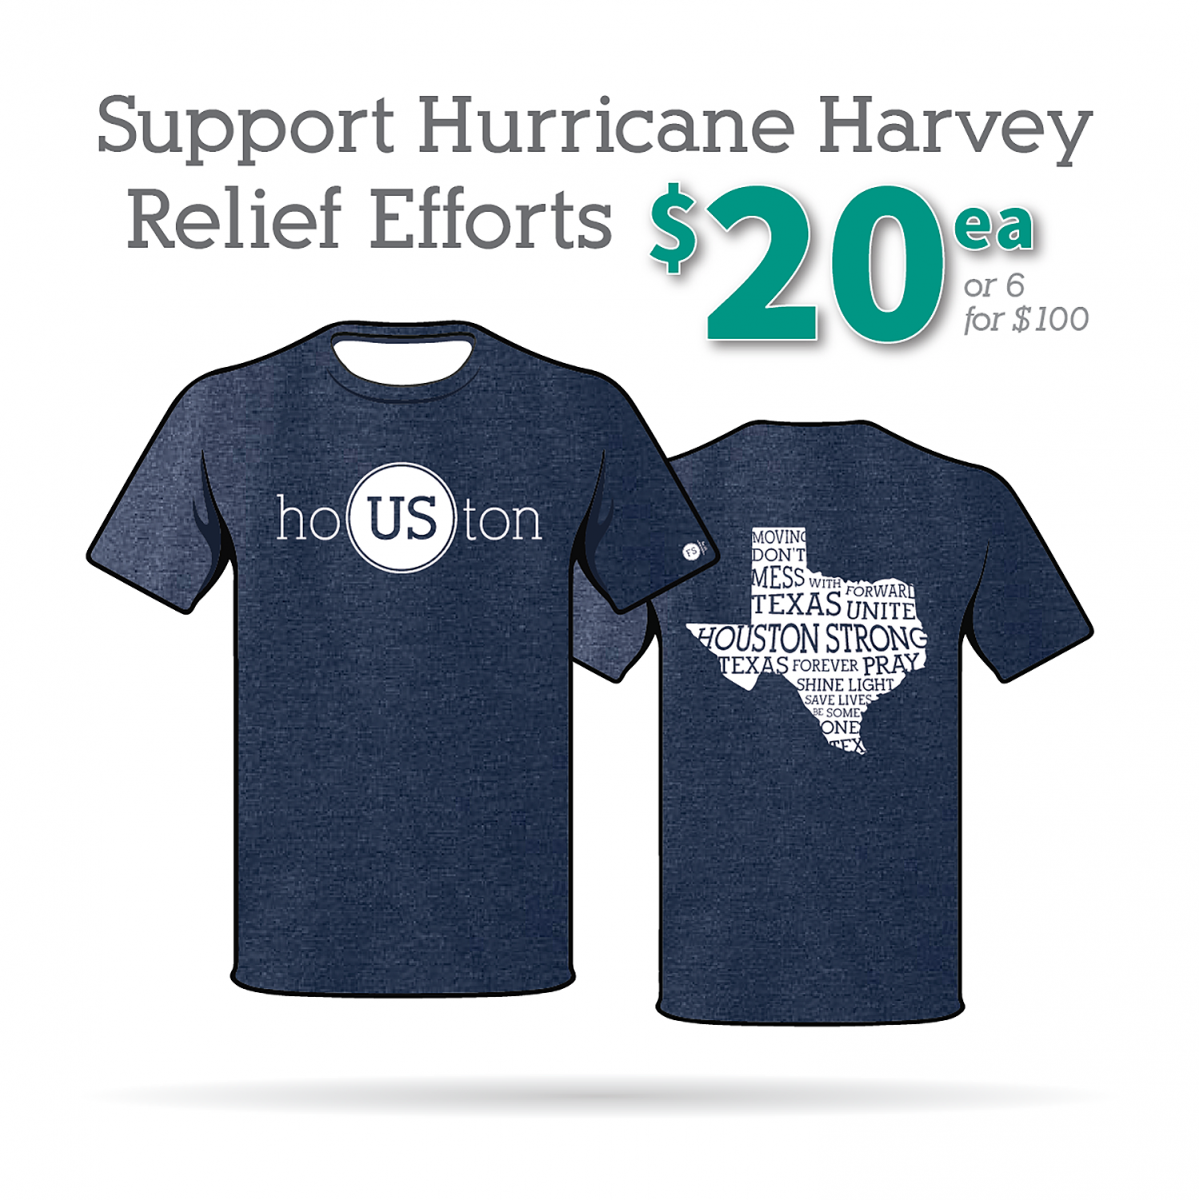 Donate to Harvey relief today.